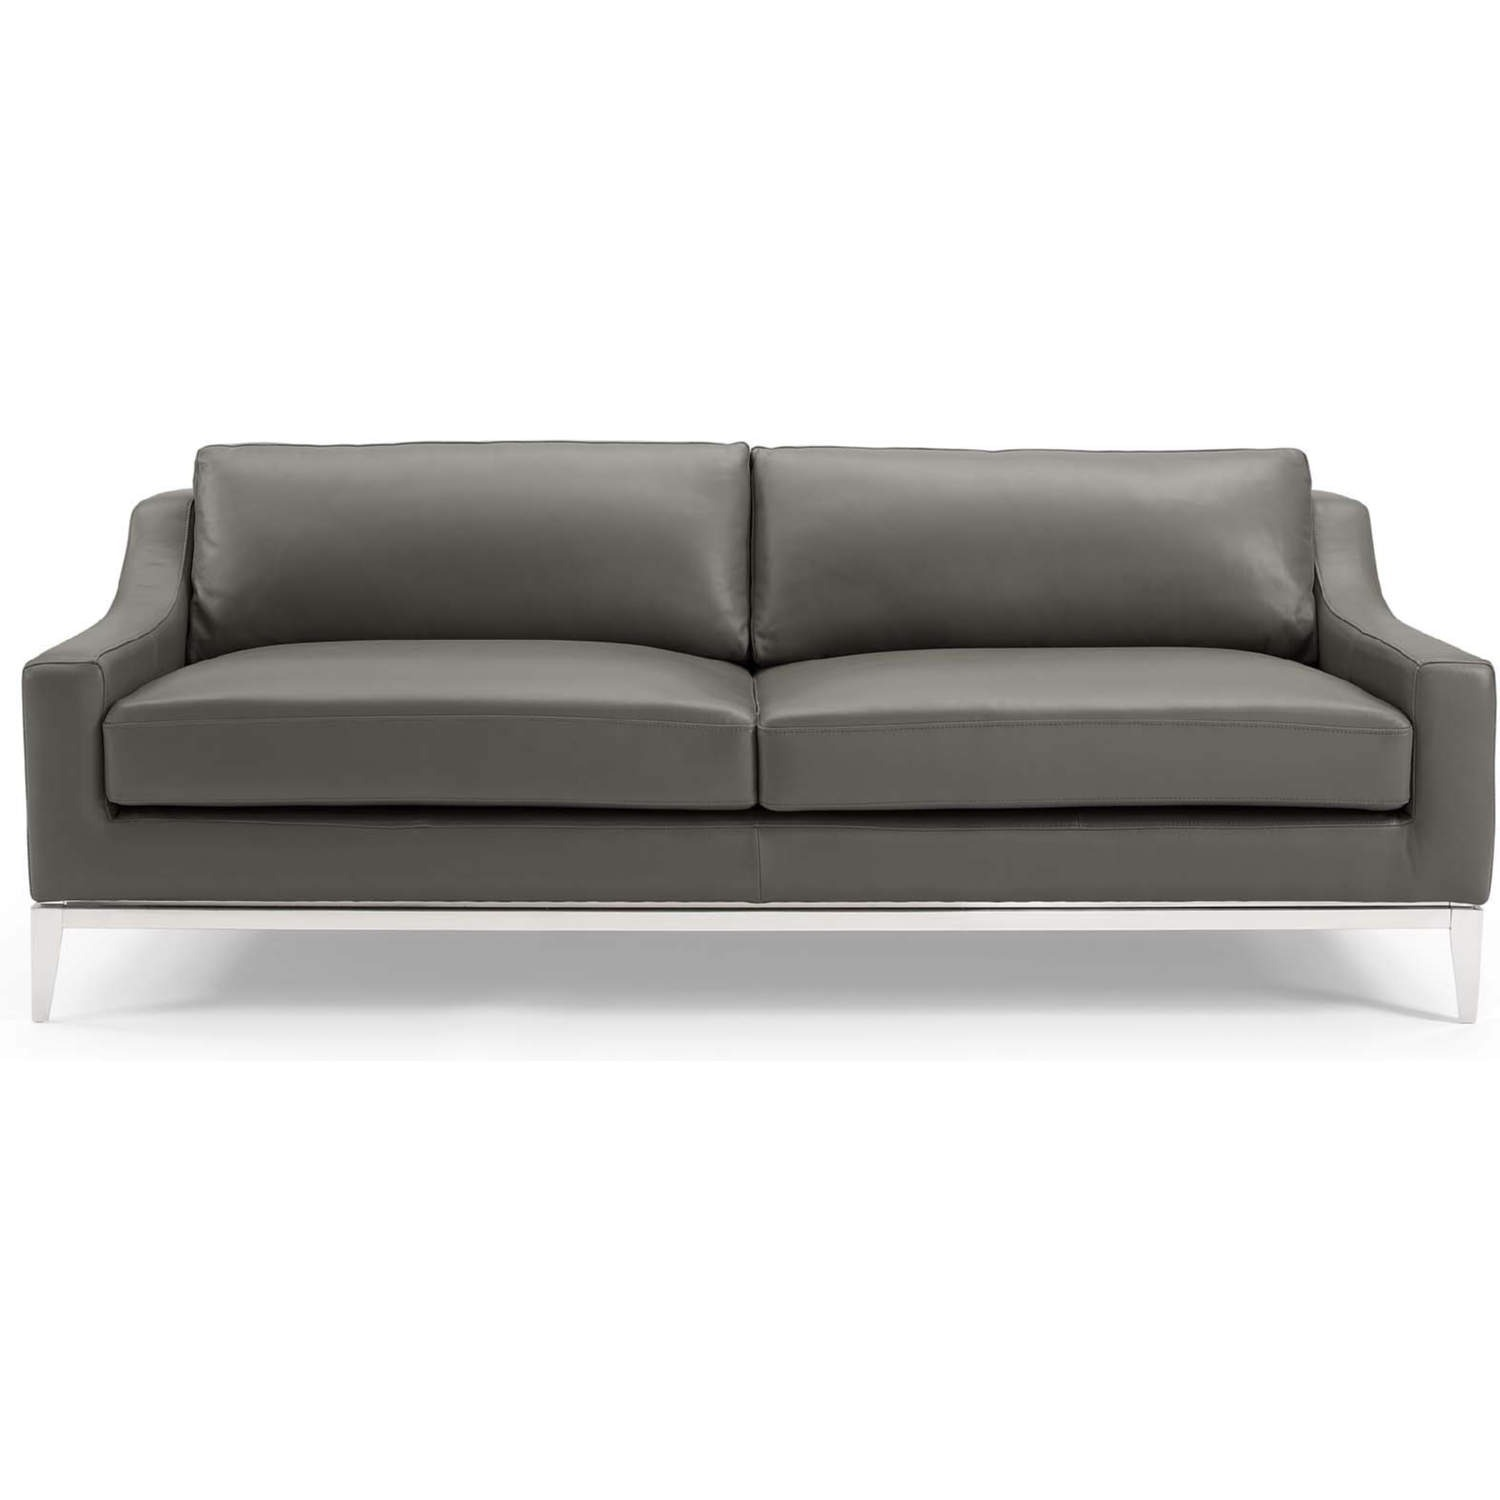 Sofa In Gray Leather Upholstery W/ Steel Base - image-3